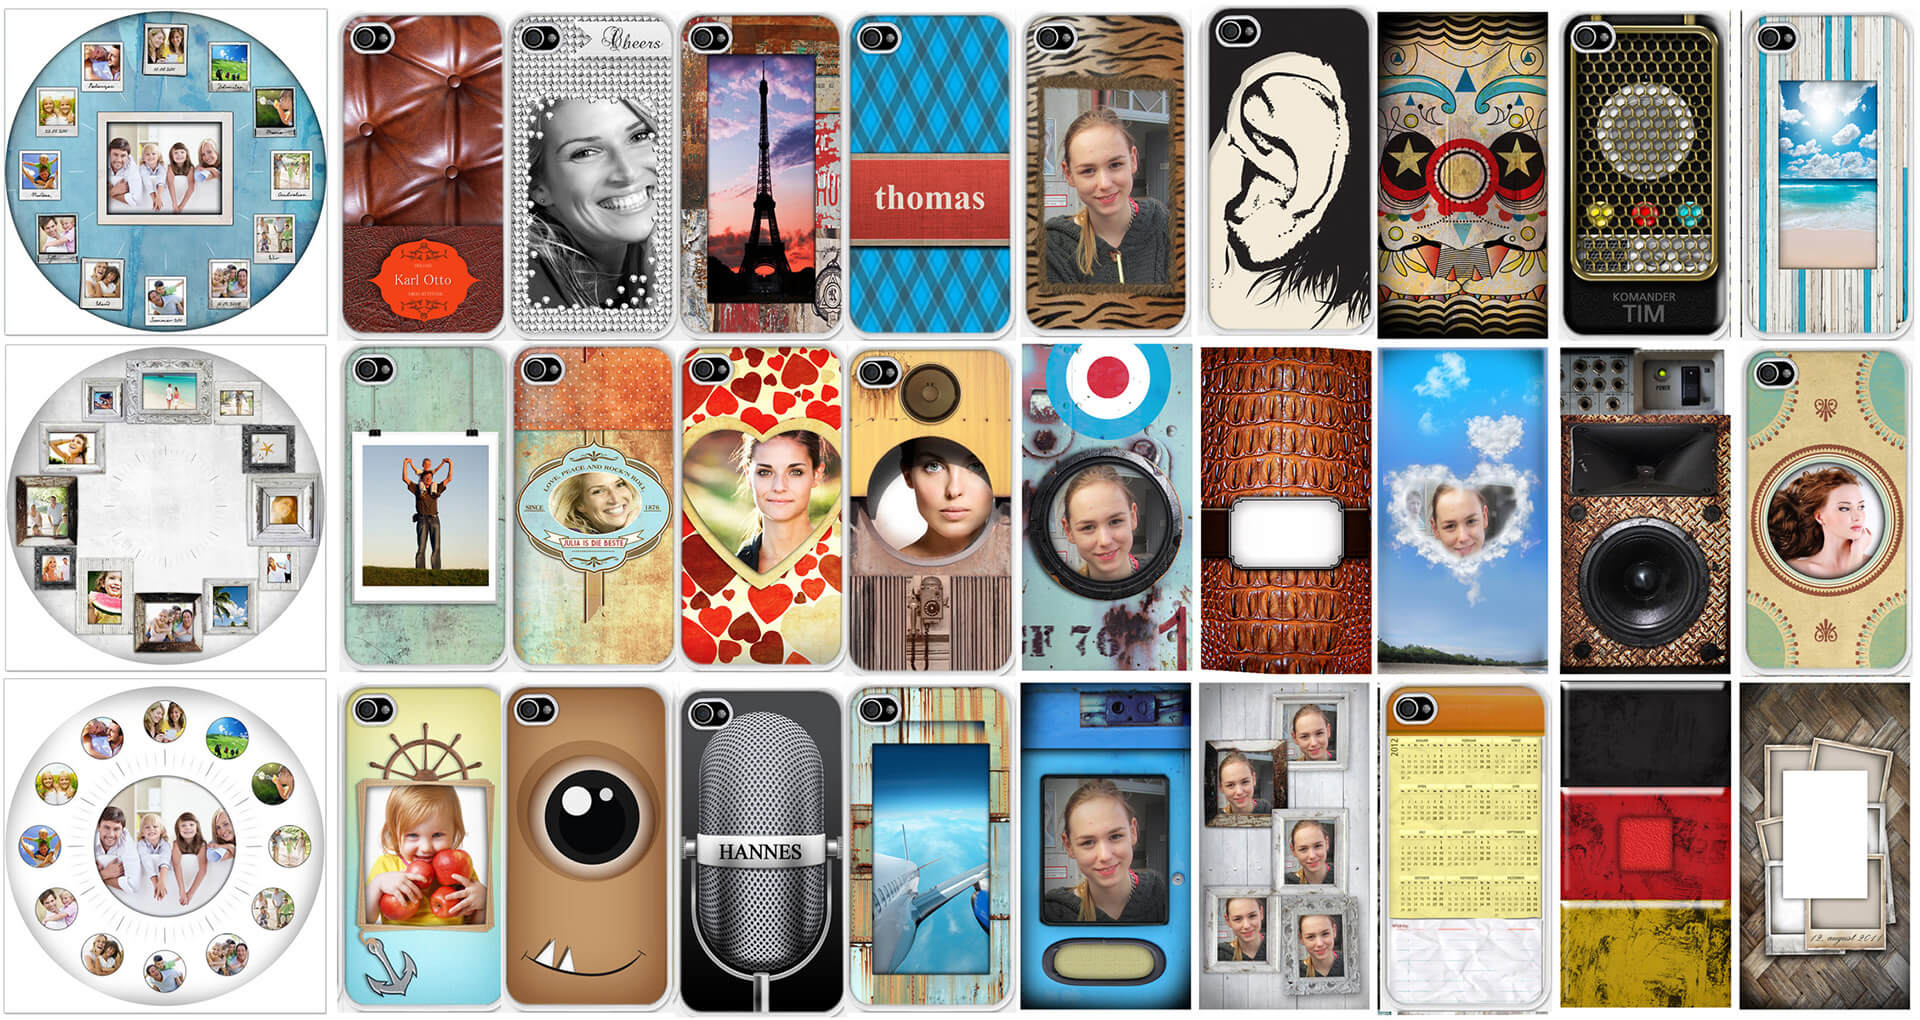 webtoprint fotobuch variable grafik walltattoo popart calendar smartphone case greeting card 15